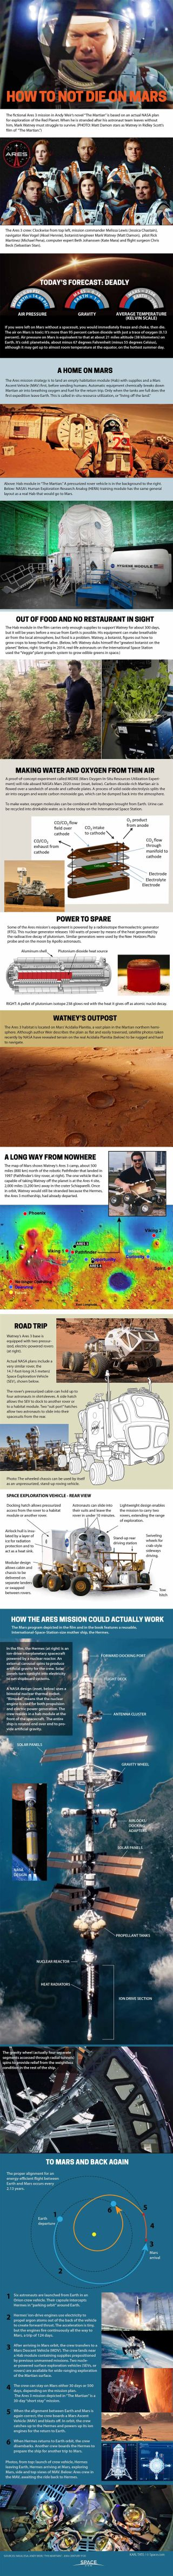 "Comparison of ""The Martian"" film with an actual NASA plan for Mars."